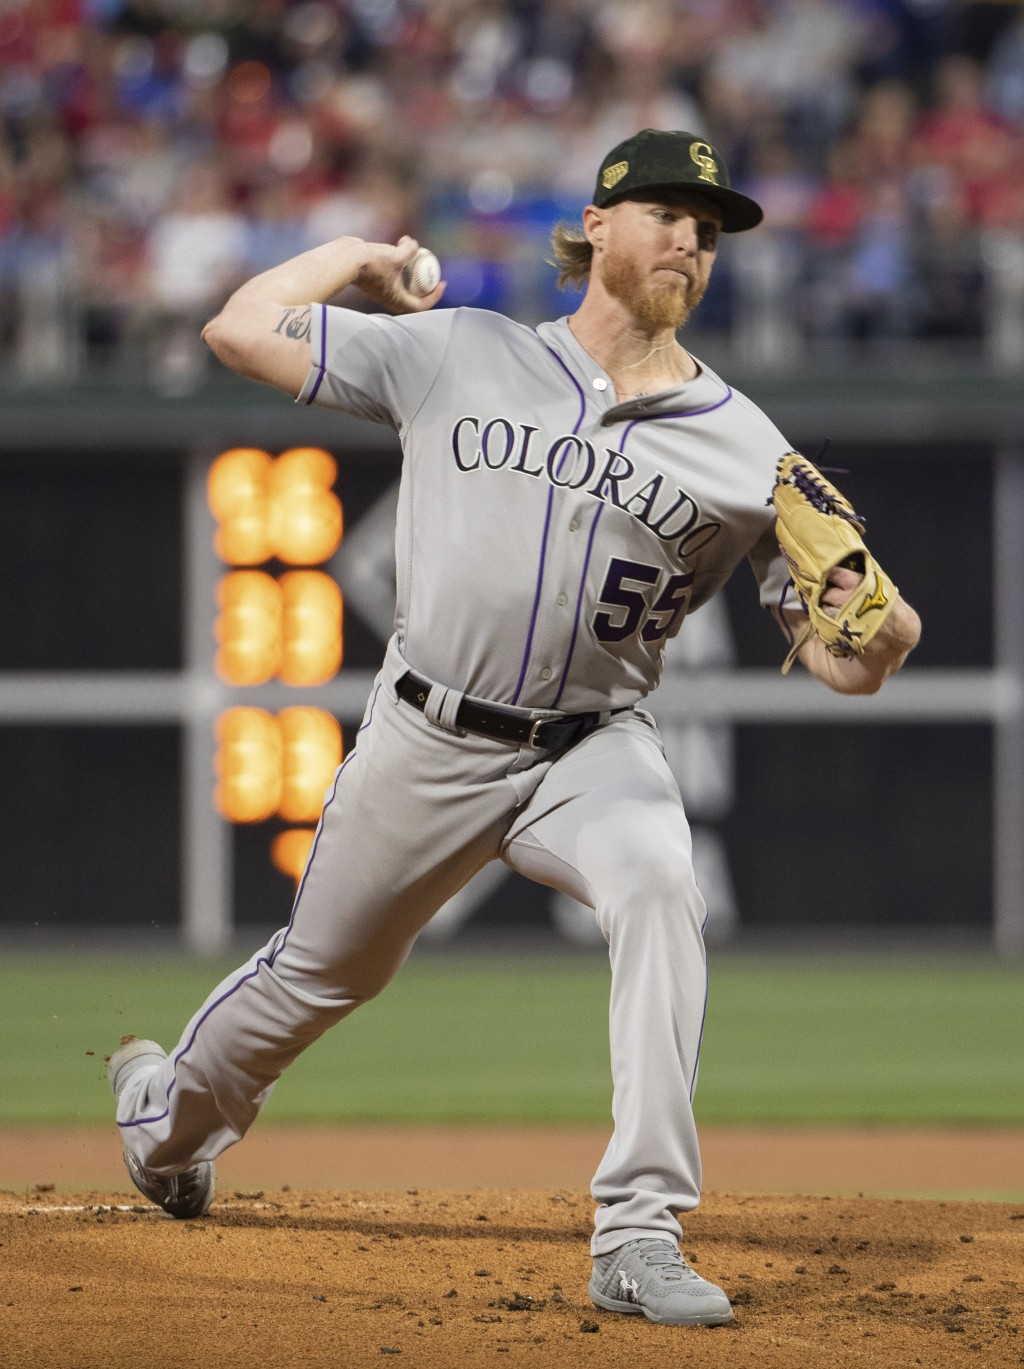 Colorado Rockies starting pitcher Jon Gray throws a pitch during the first inning of a baseball game against the Philadelphia Phillies, Friday, May 17